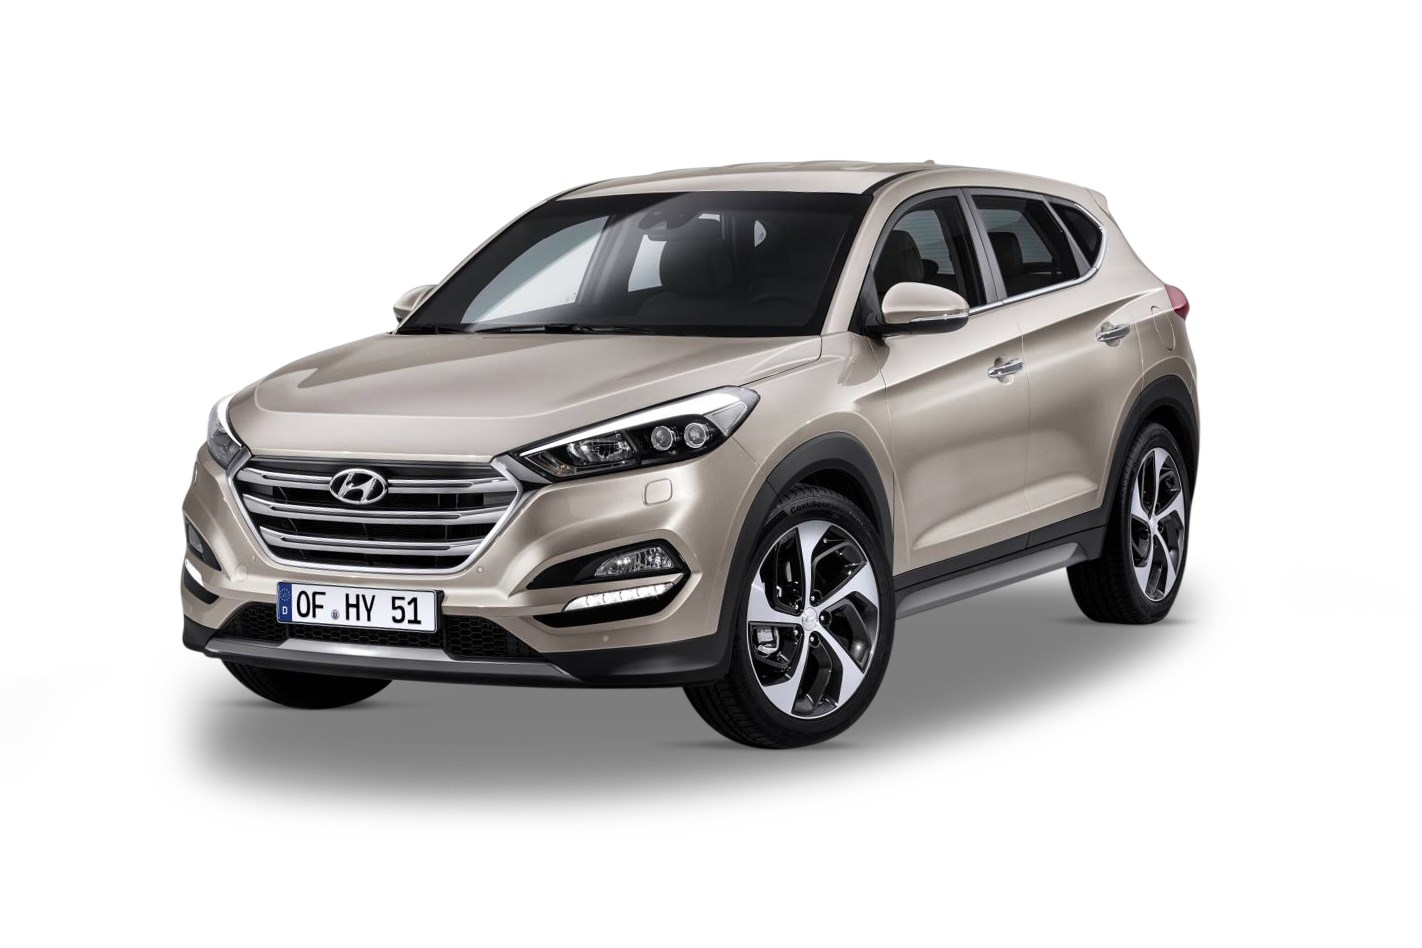 front of proud if than you highlander re the drive more it likely looking wheel and become caradvice review chances going hyundai are s owner tucson to latest be